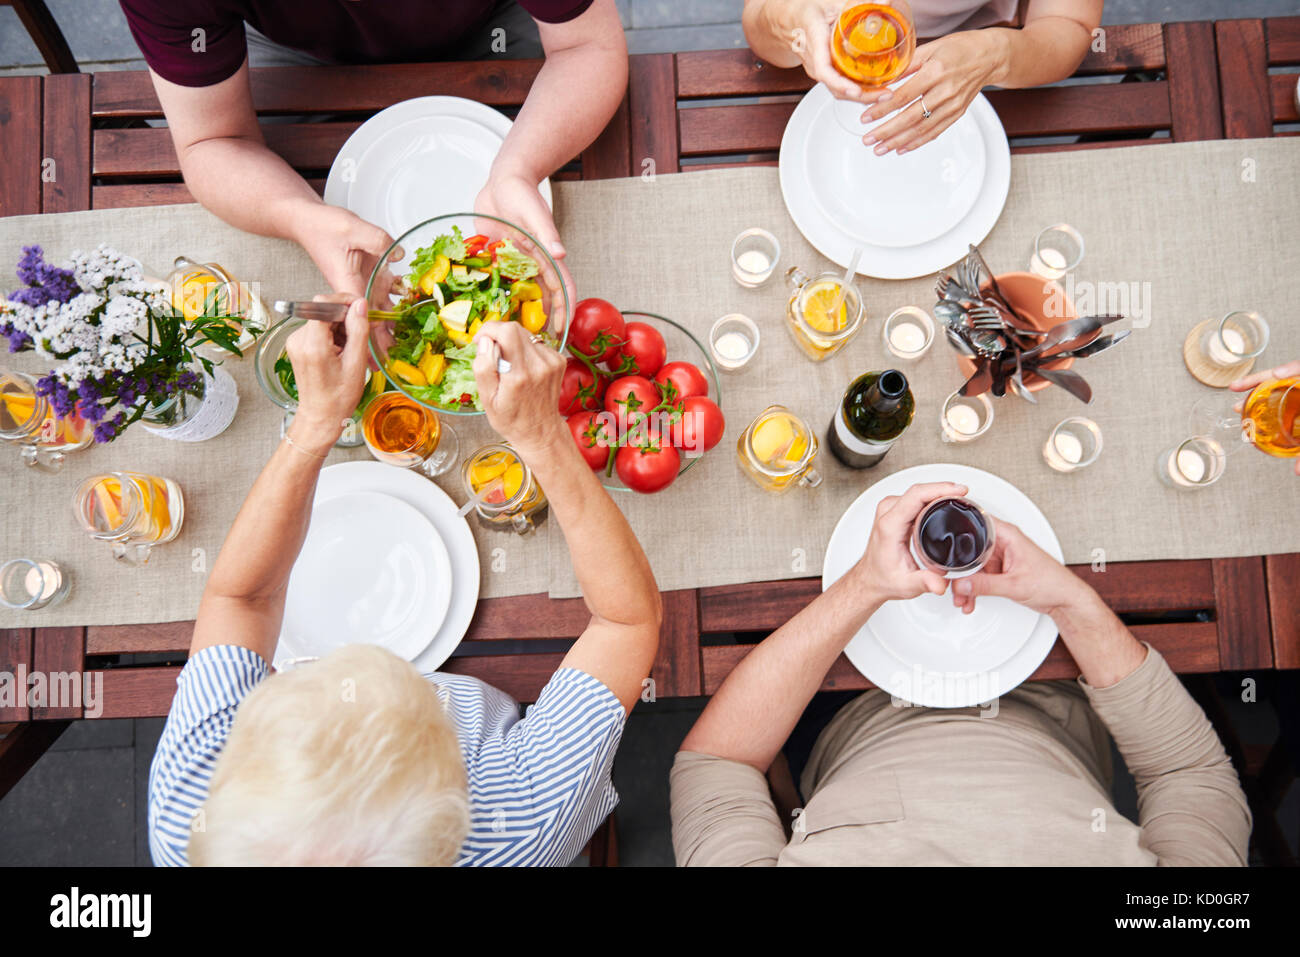 Overhead view of family handing salads at family lunch on patio - Stock Image